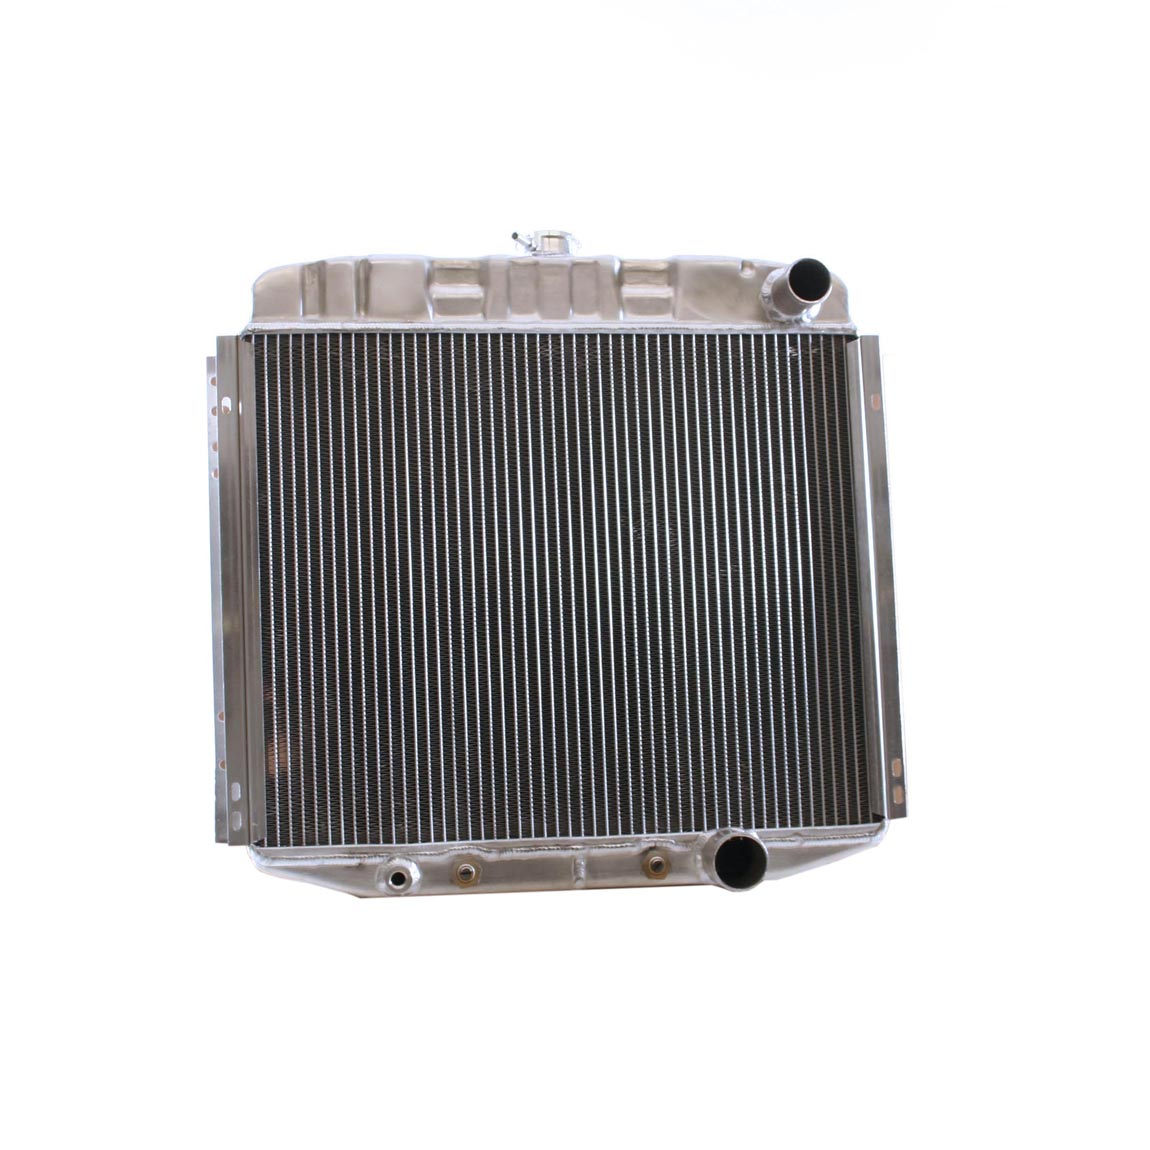 1963 Ford  Griffin Aluminum Radiator - Part Number 7-70037